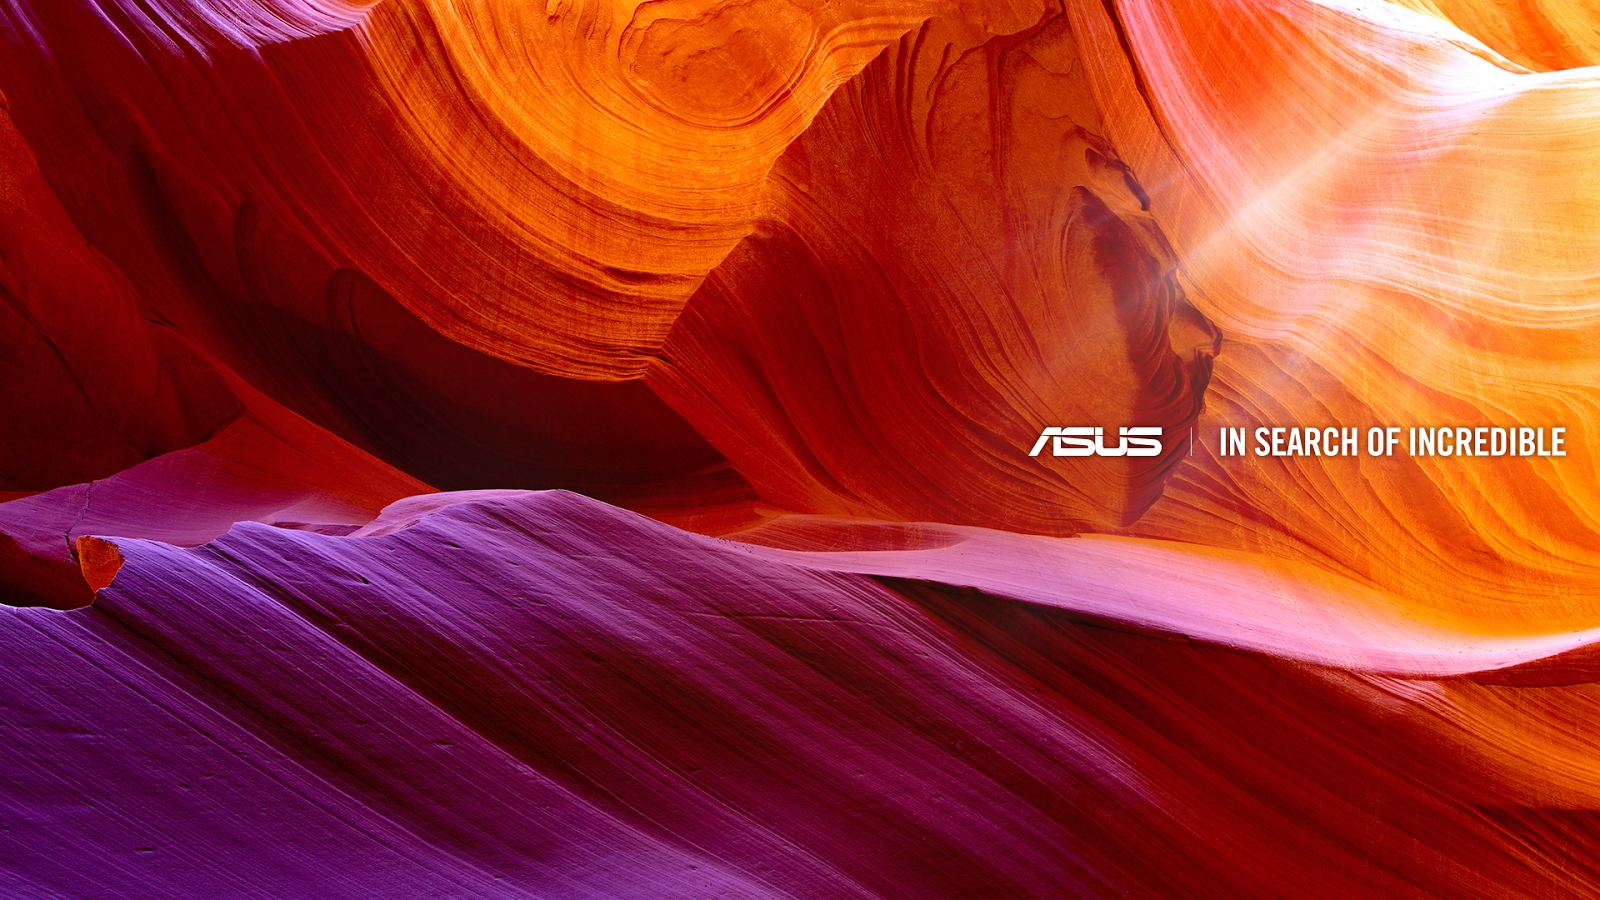 10 Best Asus In Search Of Incredible Wallpaper FULL HD 1080p For PC Background